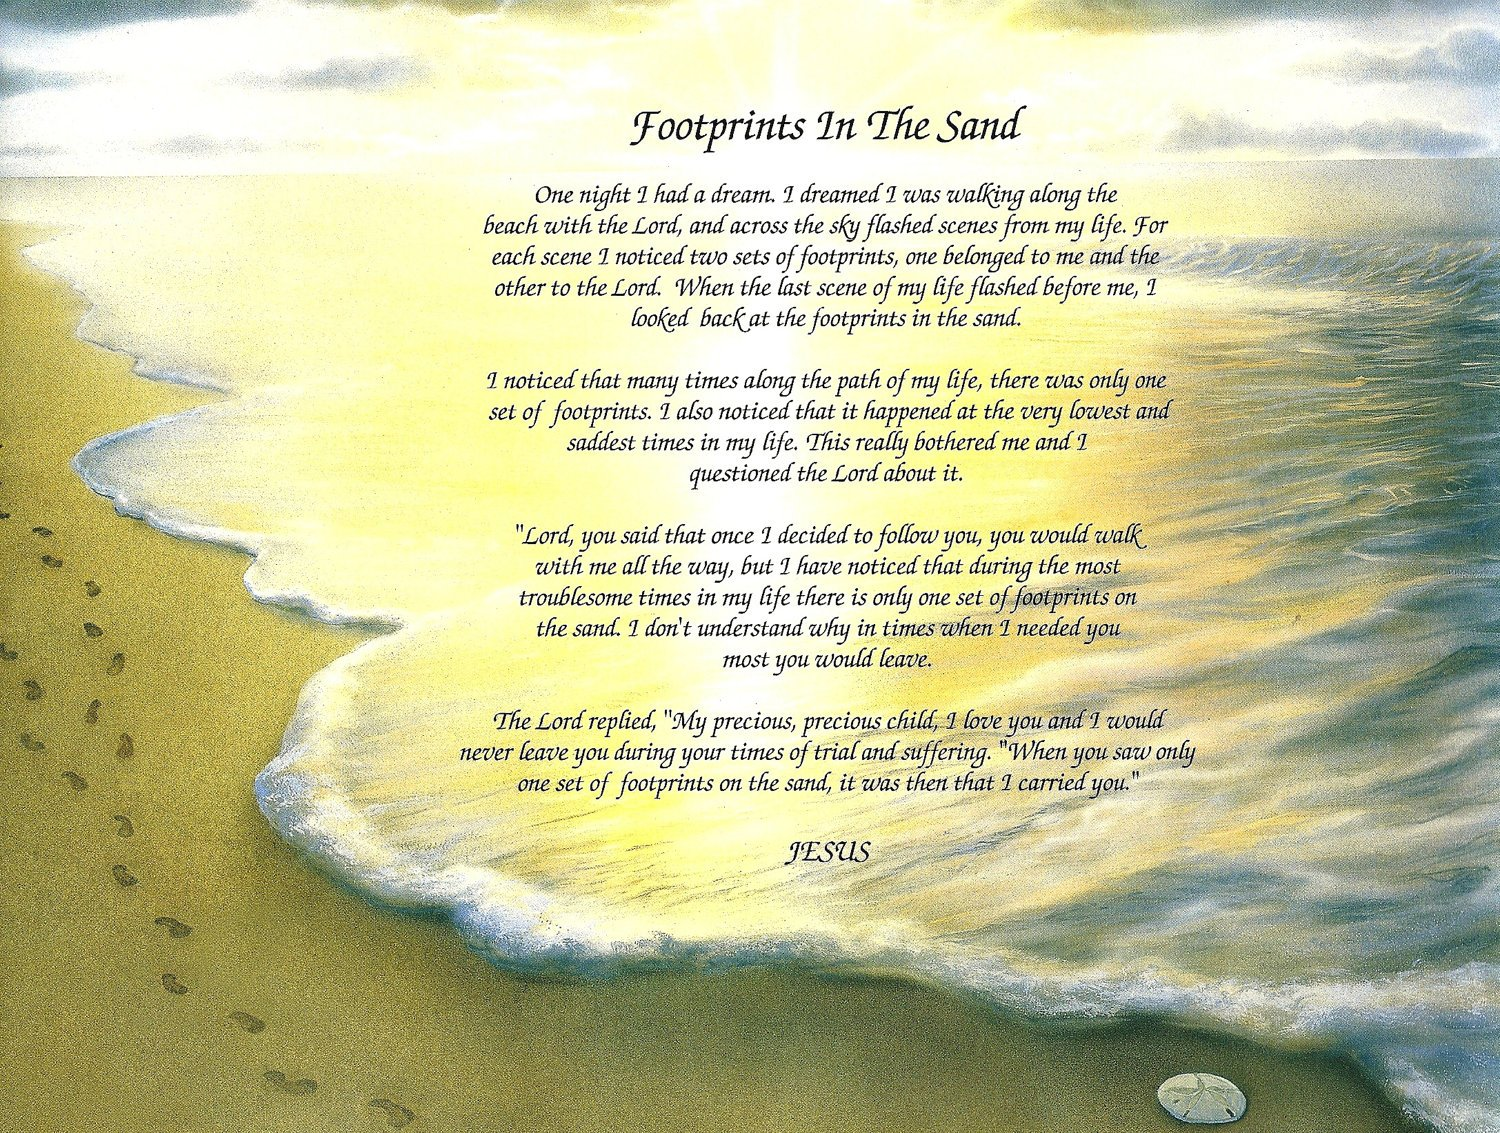 Footprints In The Sand Poem Printable Footprints in the sand poem 1500x1133